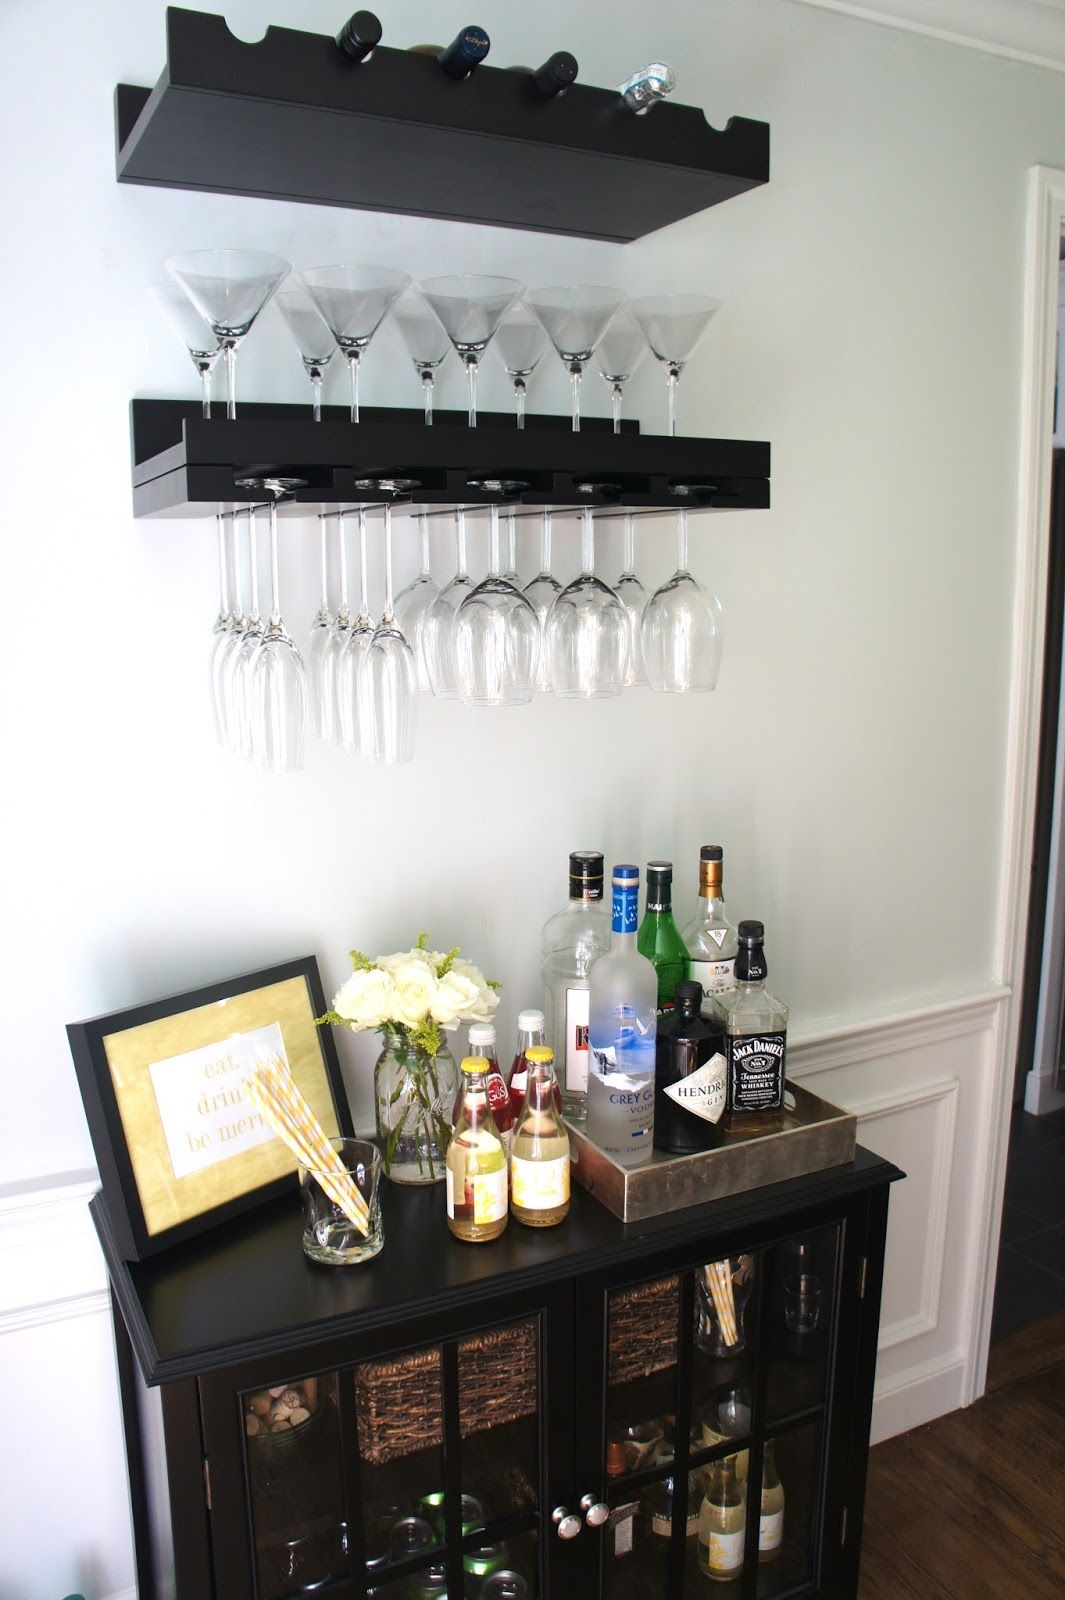 An Organized Home Bar Area in 2018 | DIY housewife shit | Pinterest ...